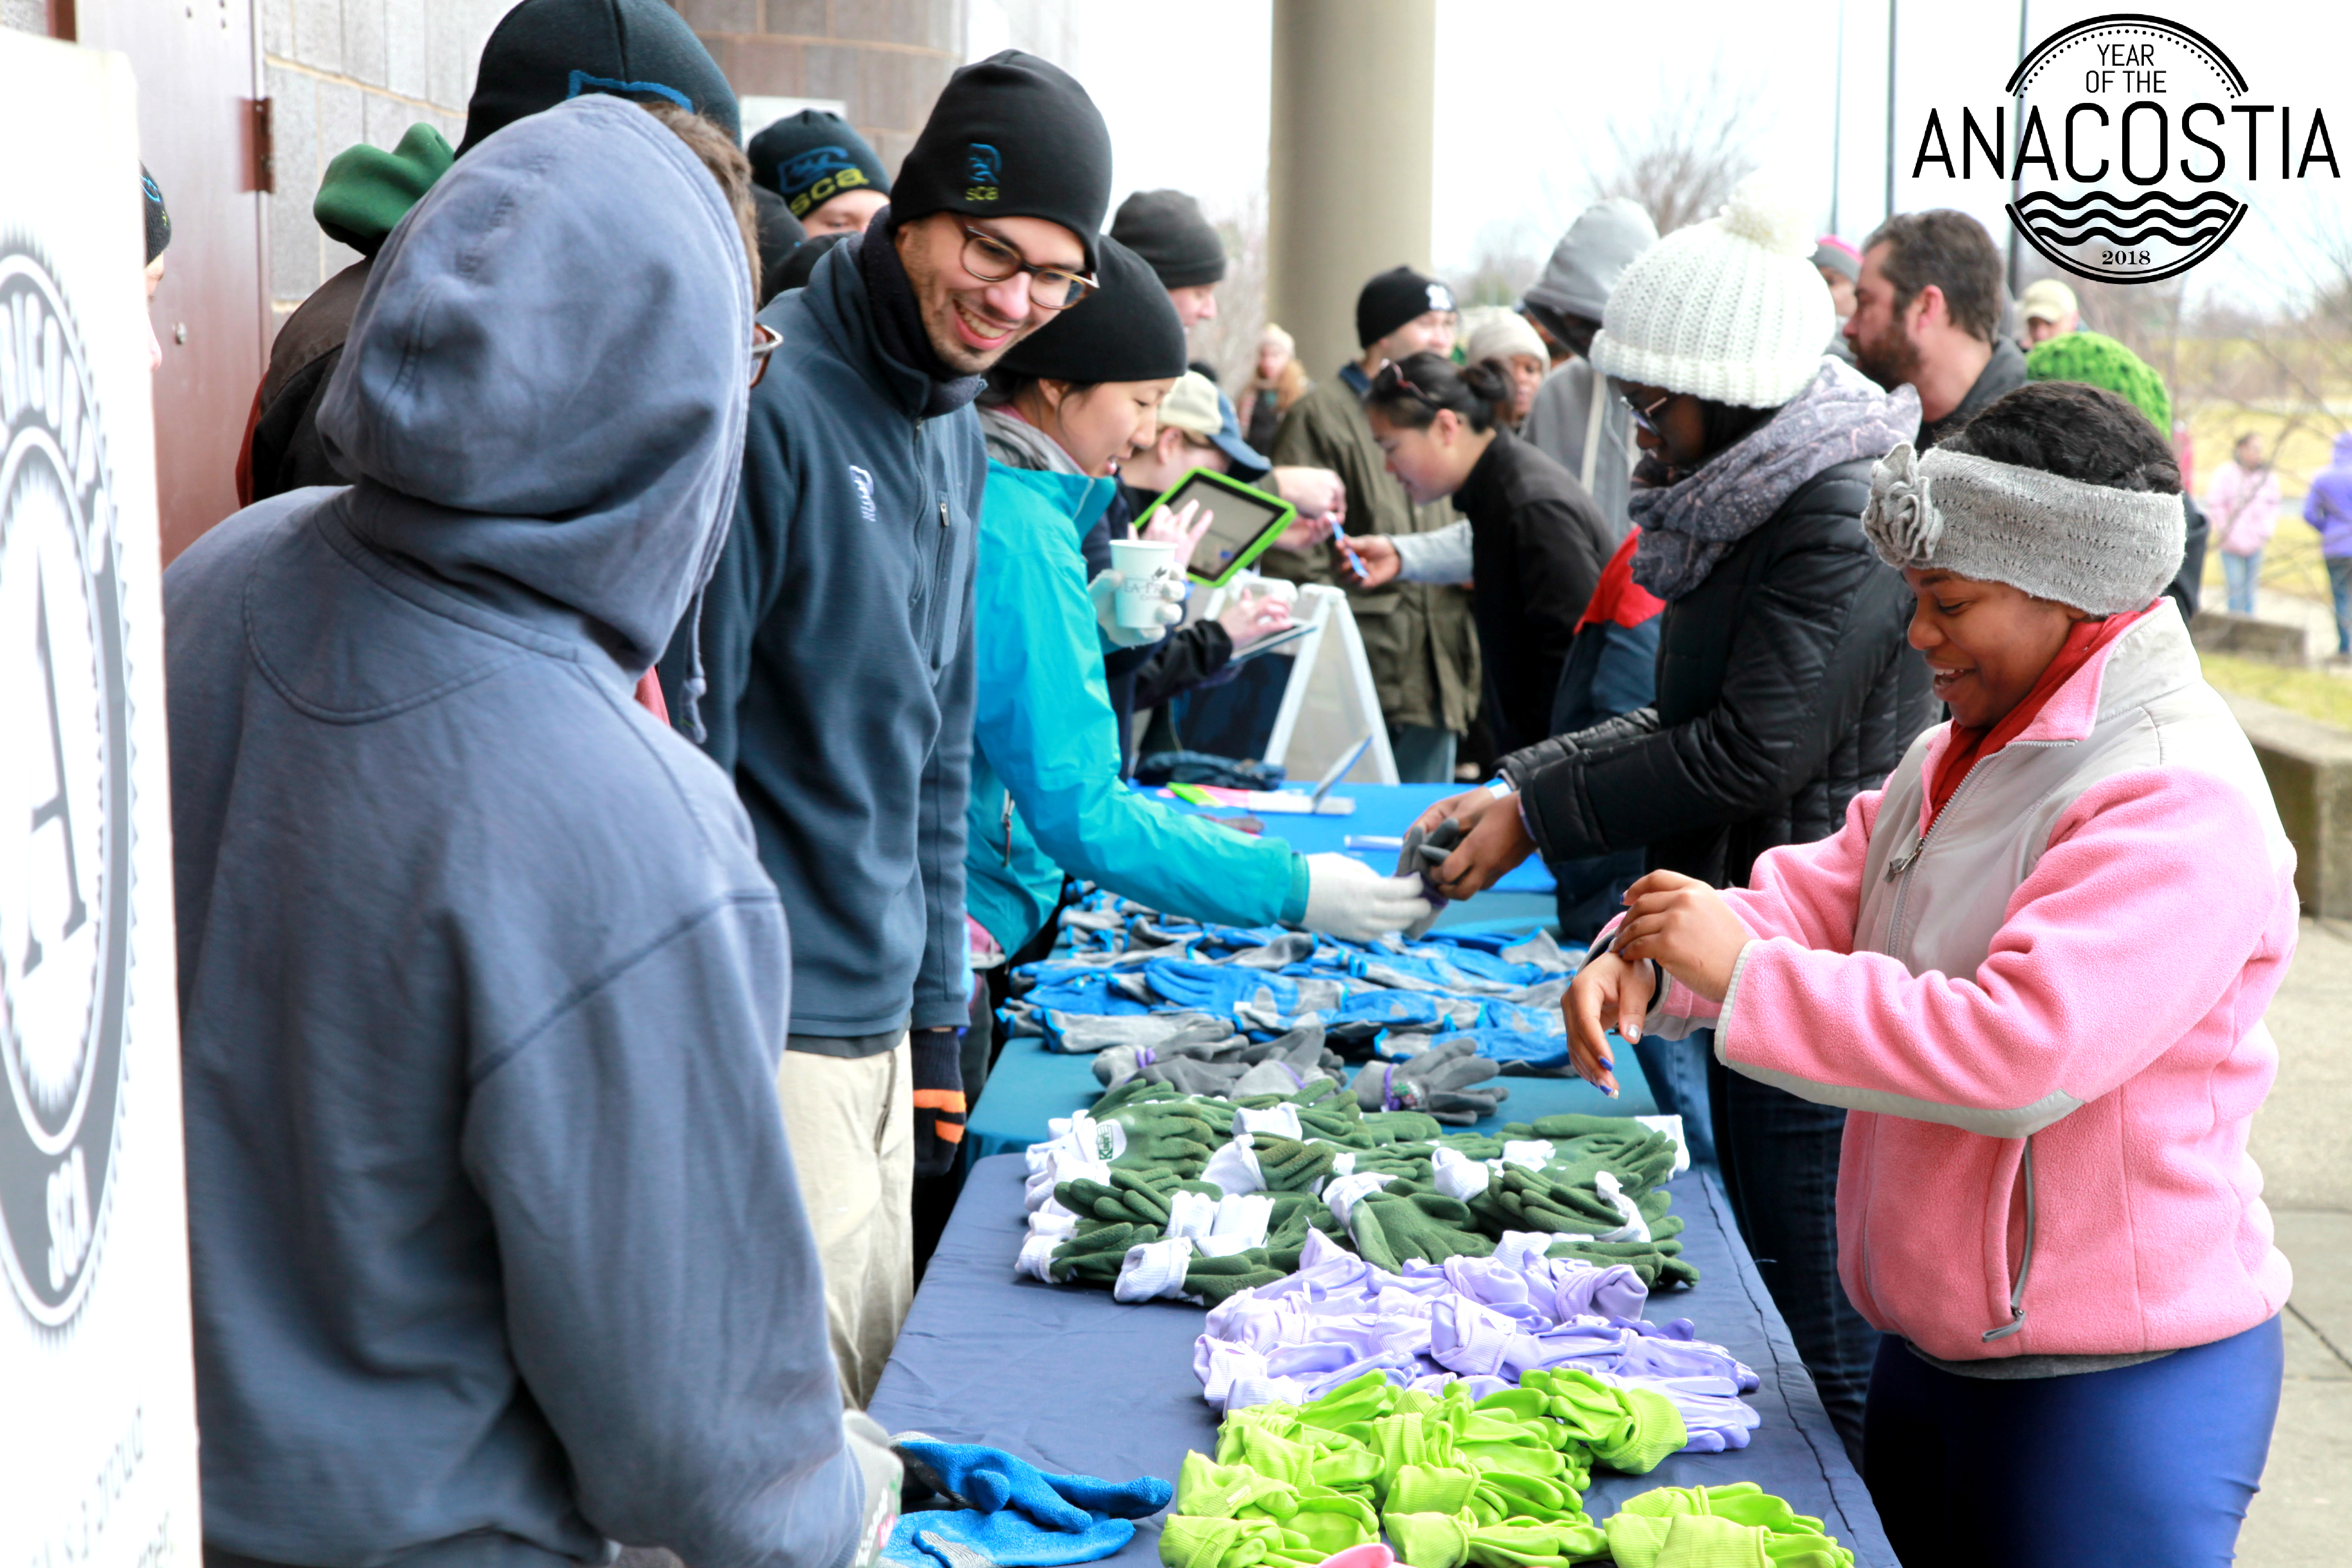 2015 MLK Day of Service in Anacostia Park